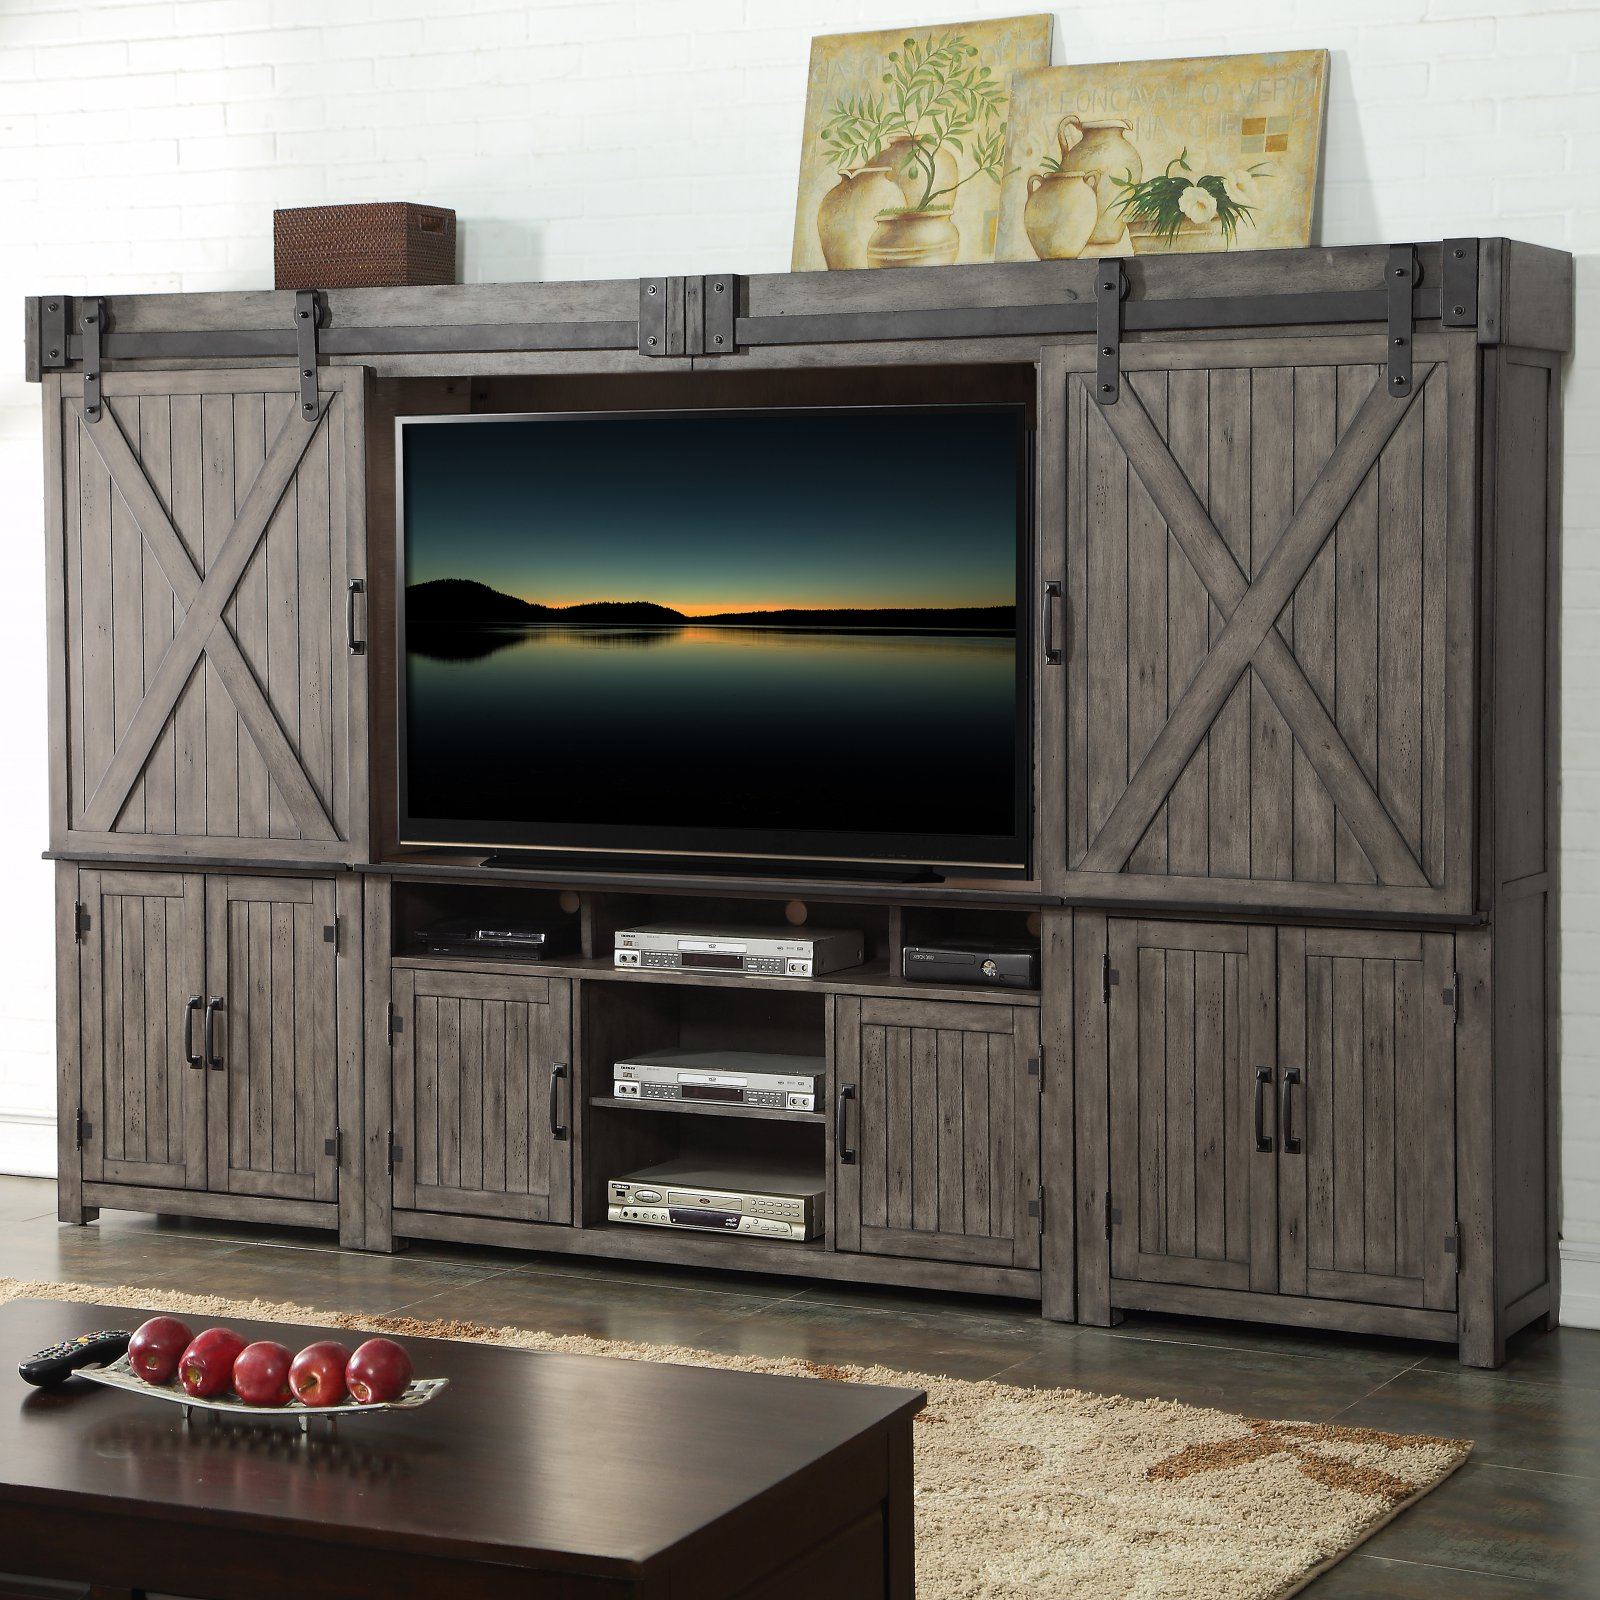 Legends furniture storehouse entertainment center walmart com